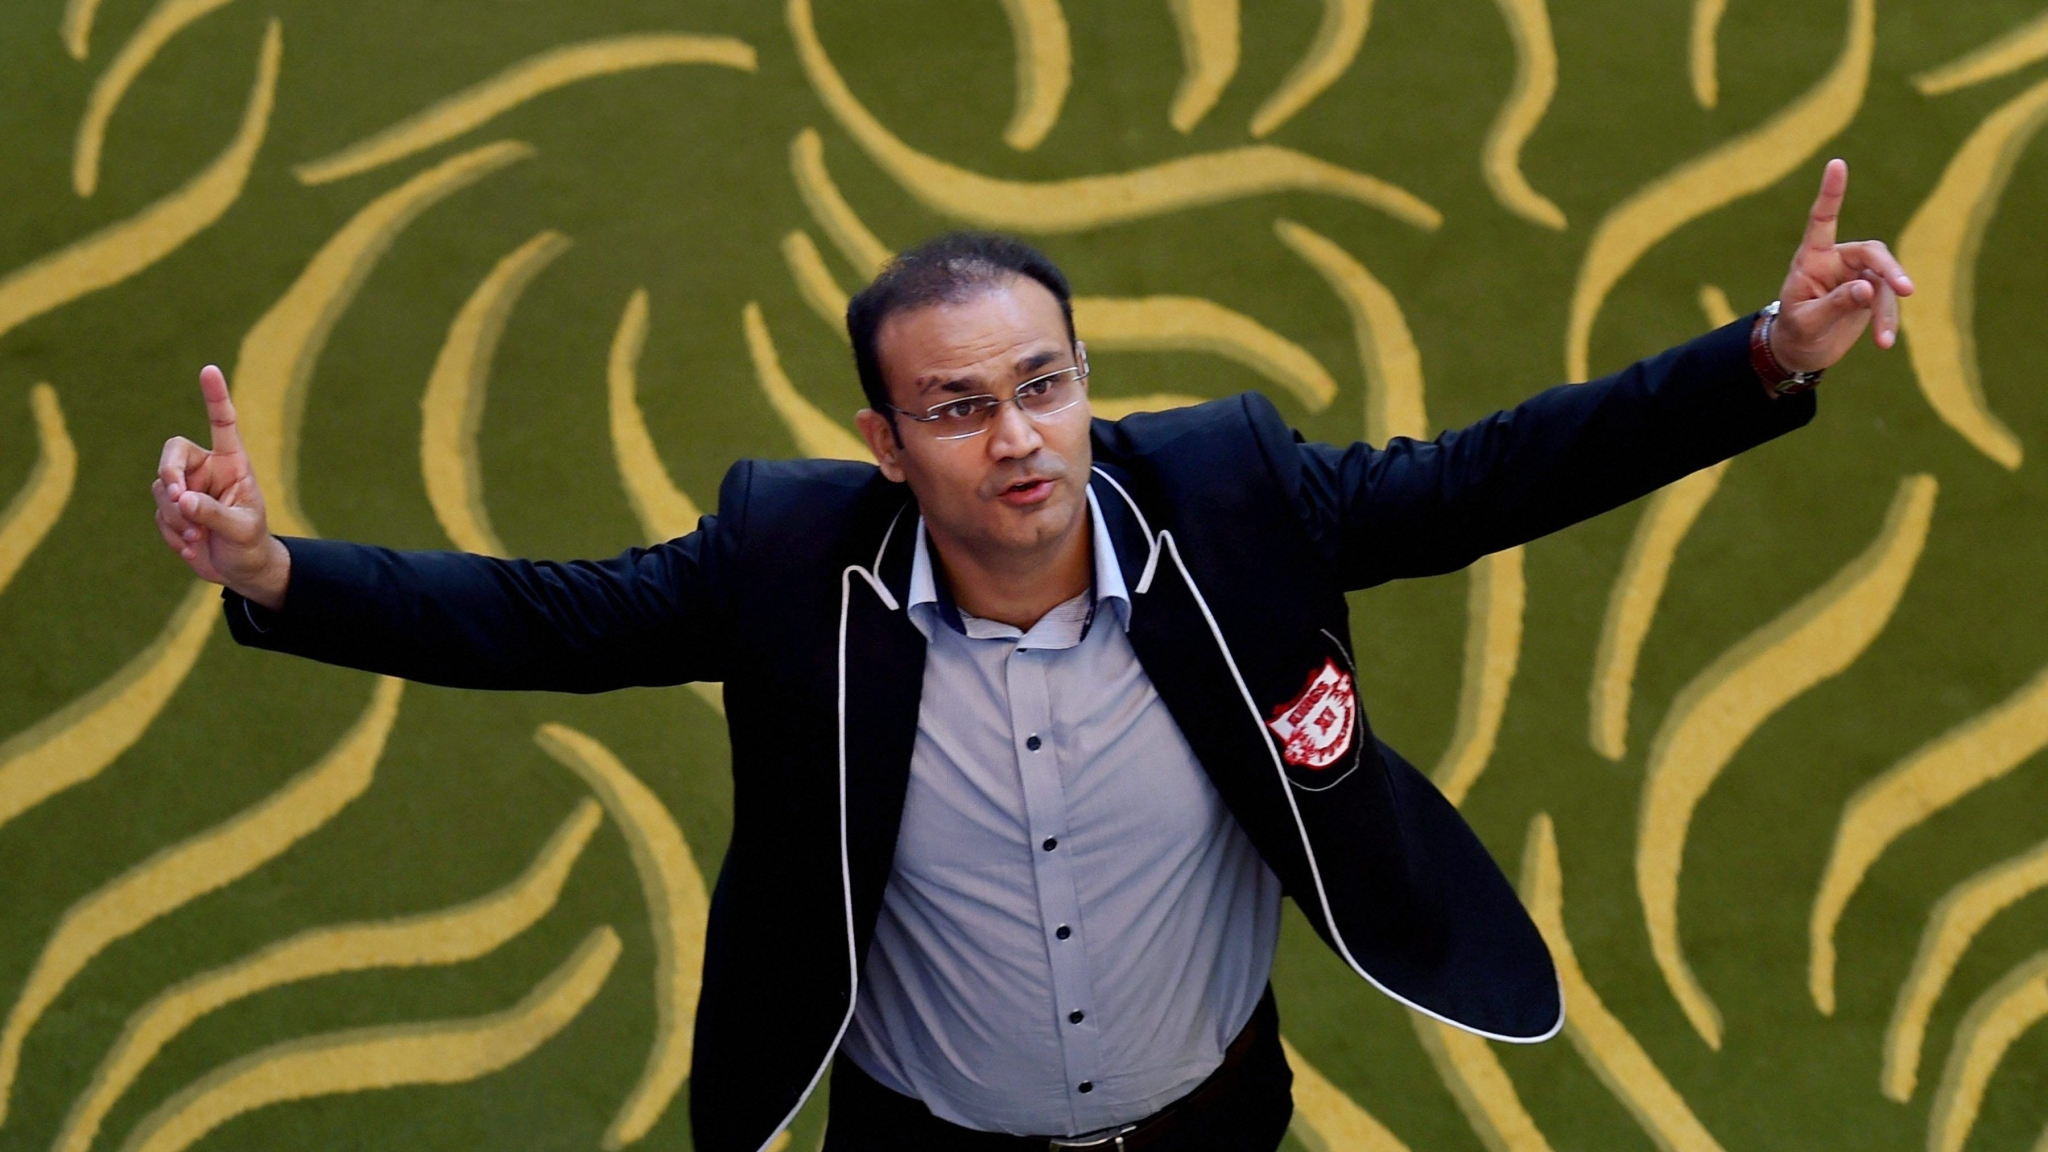 Sehwag in Awe of Rohit's Form, Says Even Kohli Hasn't Matched It